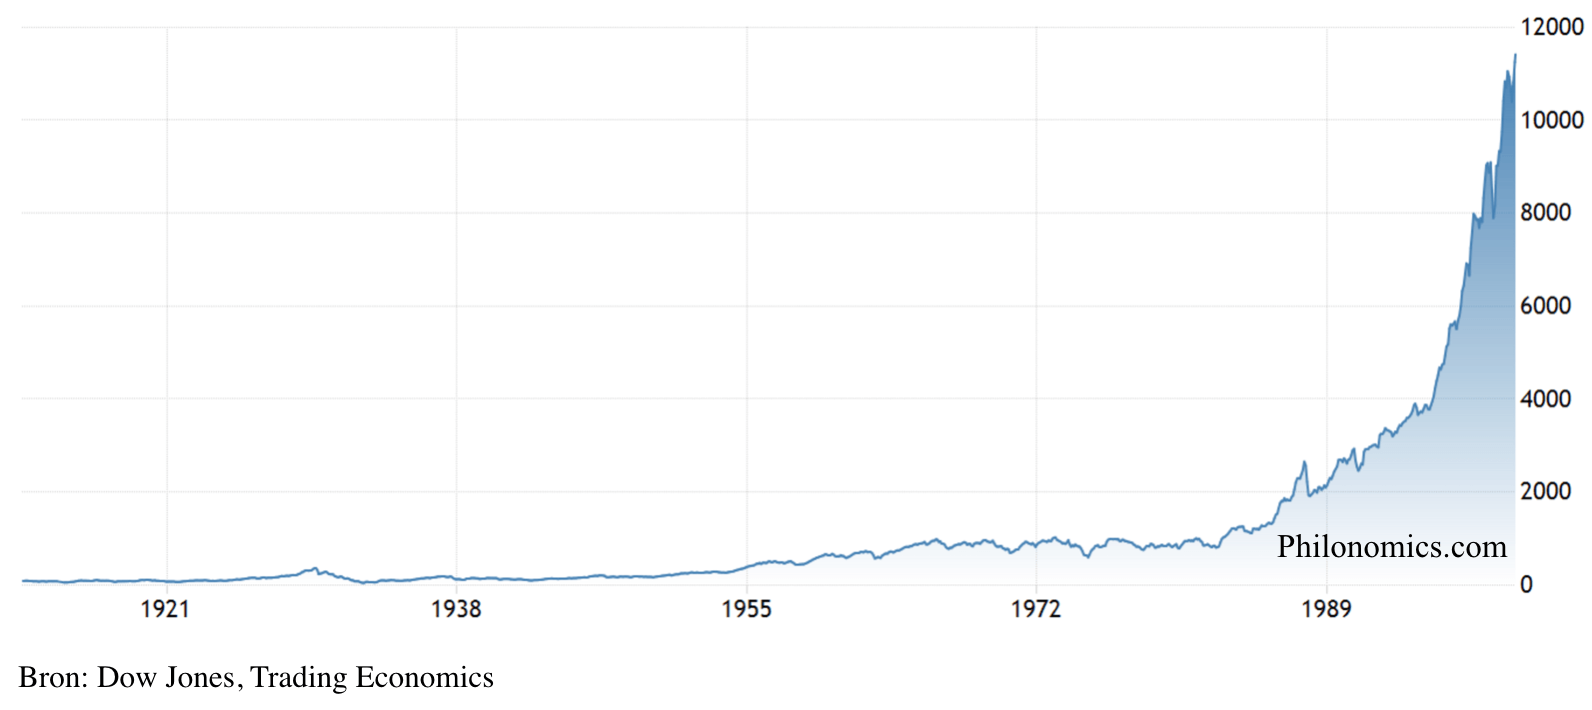 Dow Jones Industrial Average (1912-2000)